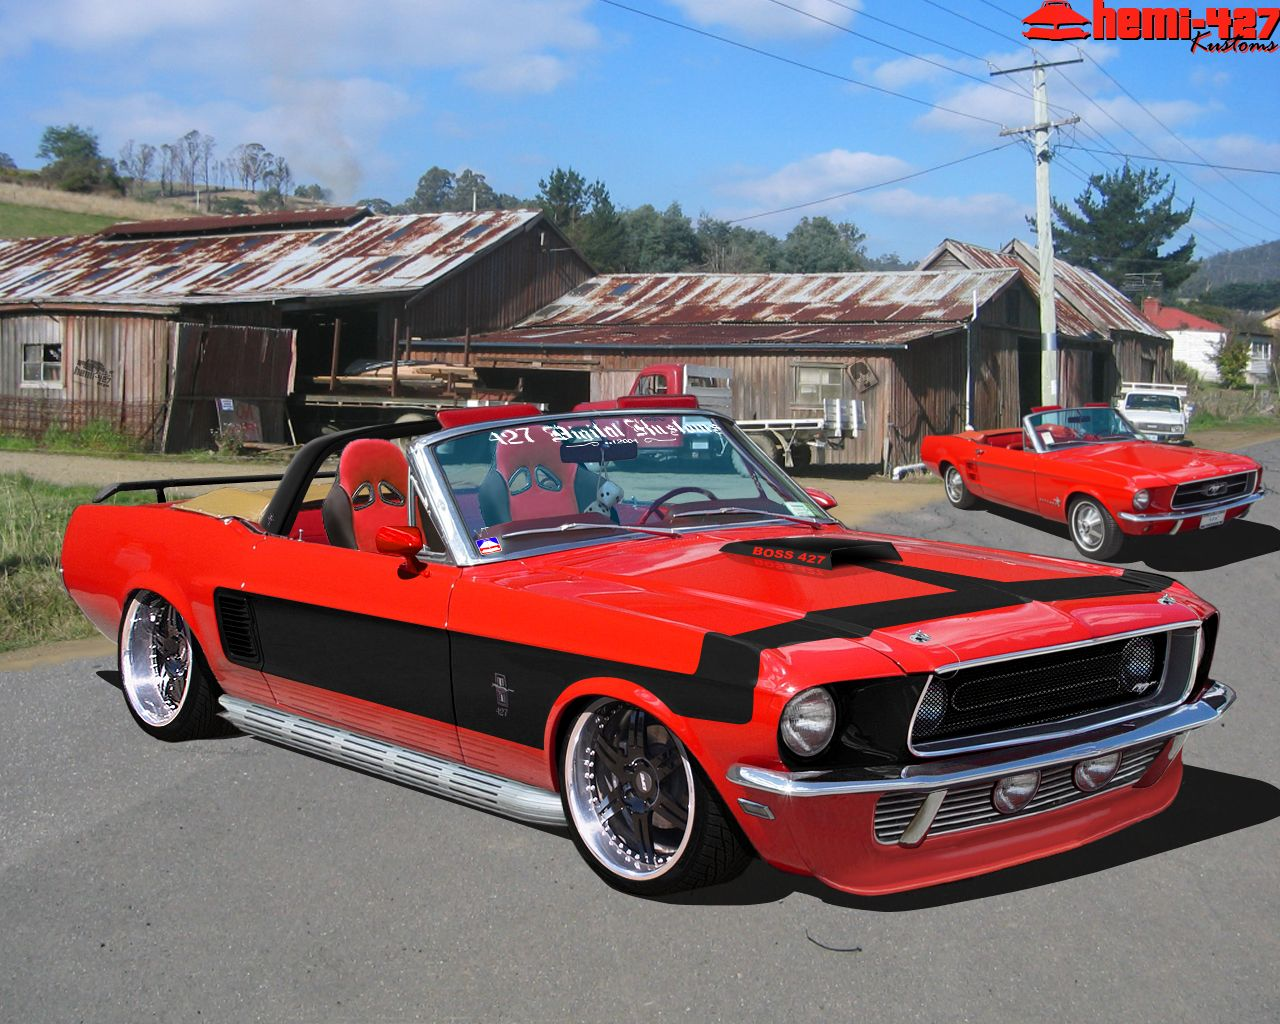 67 Mustang this was my first car ! Love it | Old rides | Pinterest ...